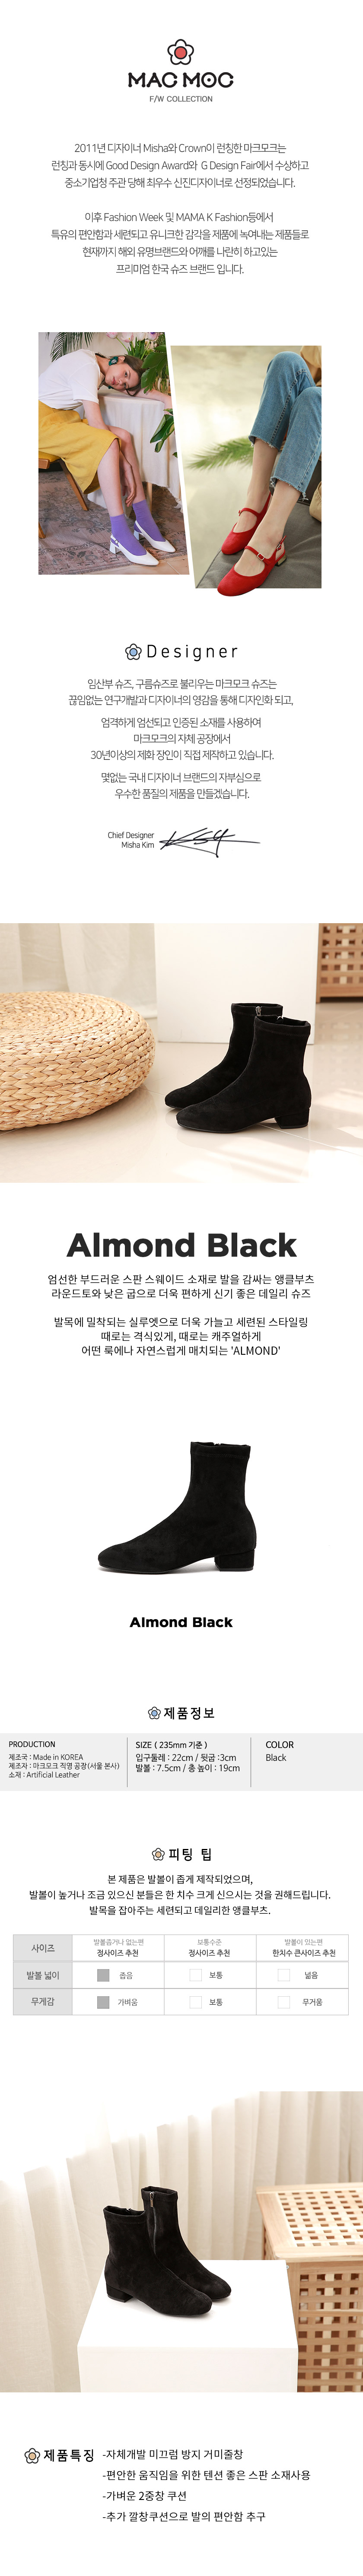 마크모크(MAC MOC) Almond Black